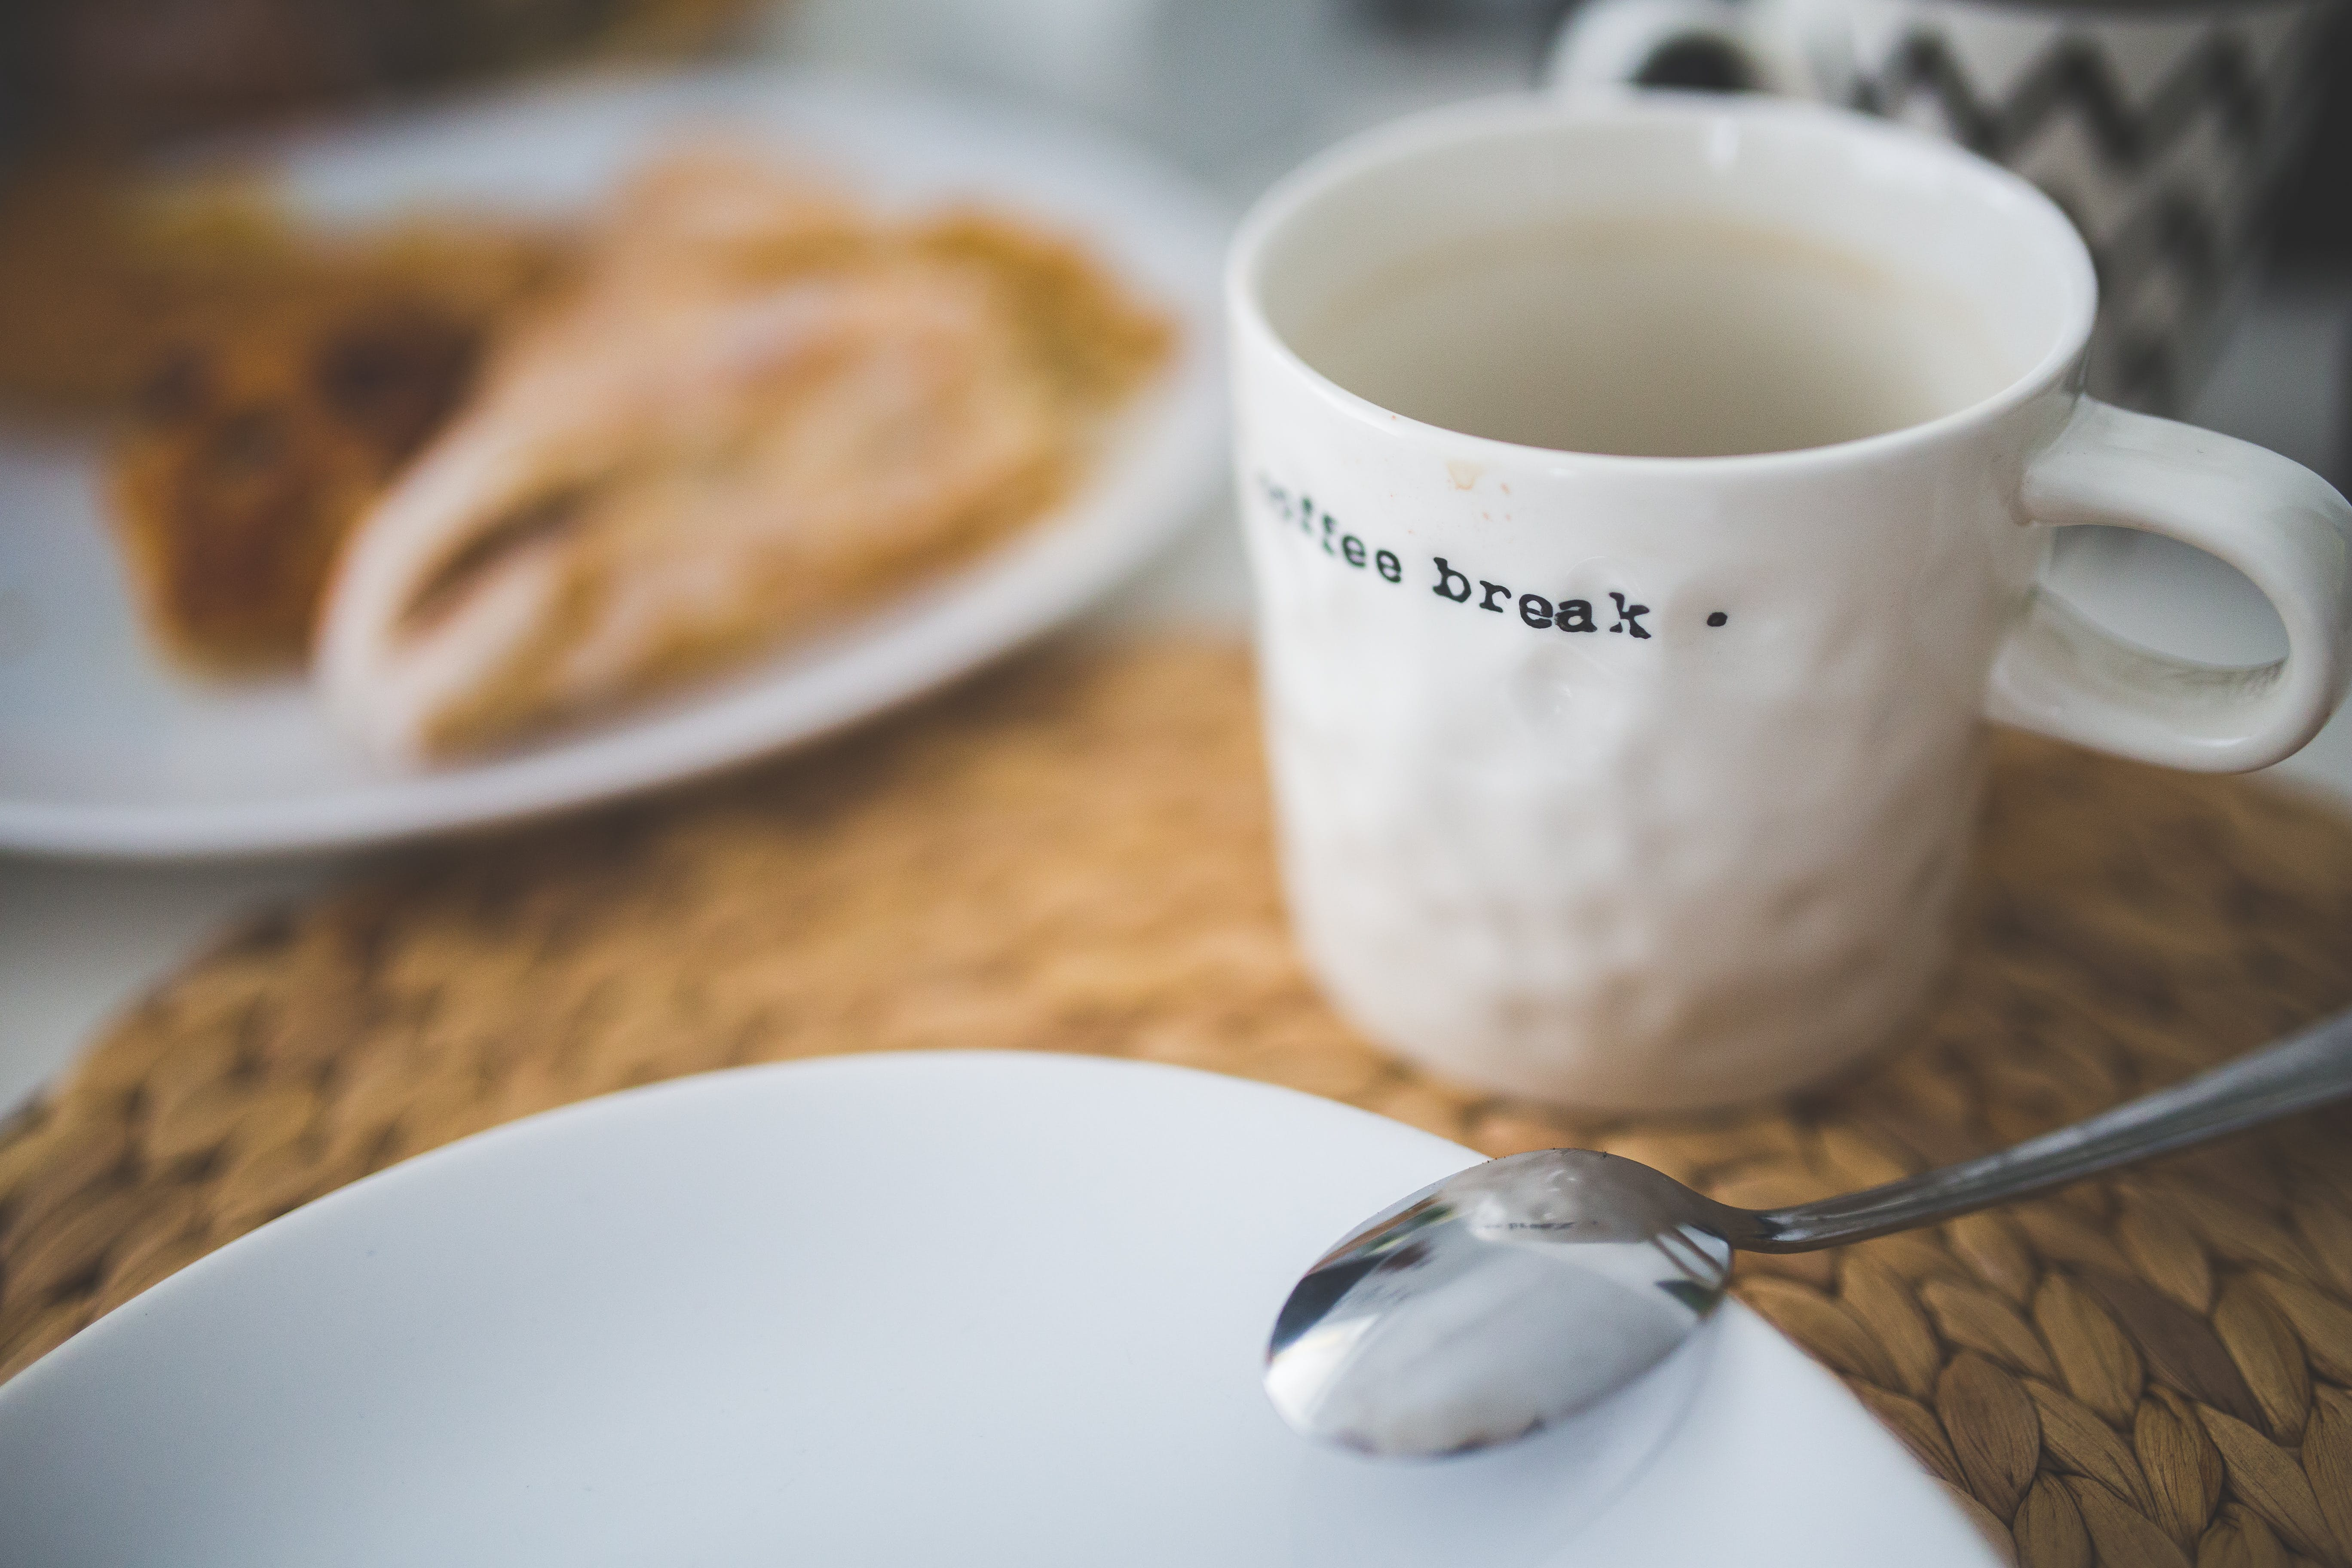 White mug with Break word